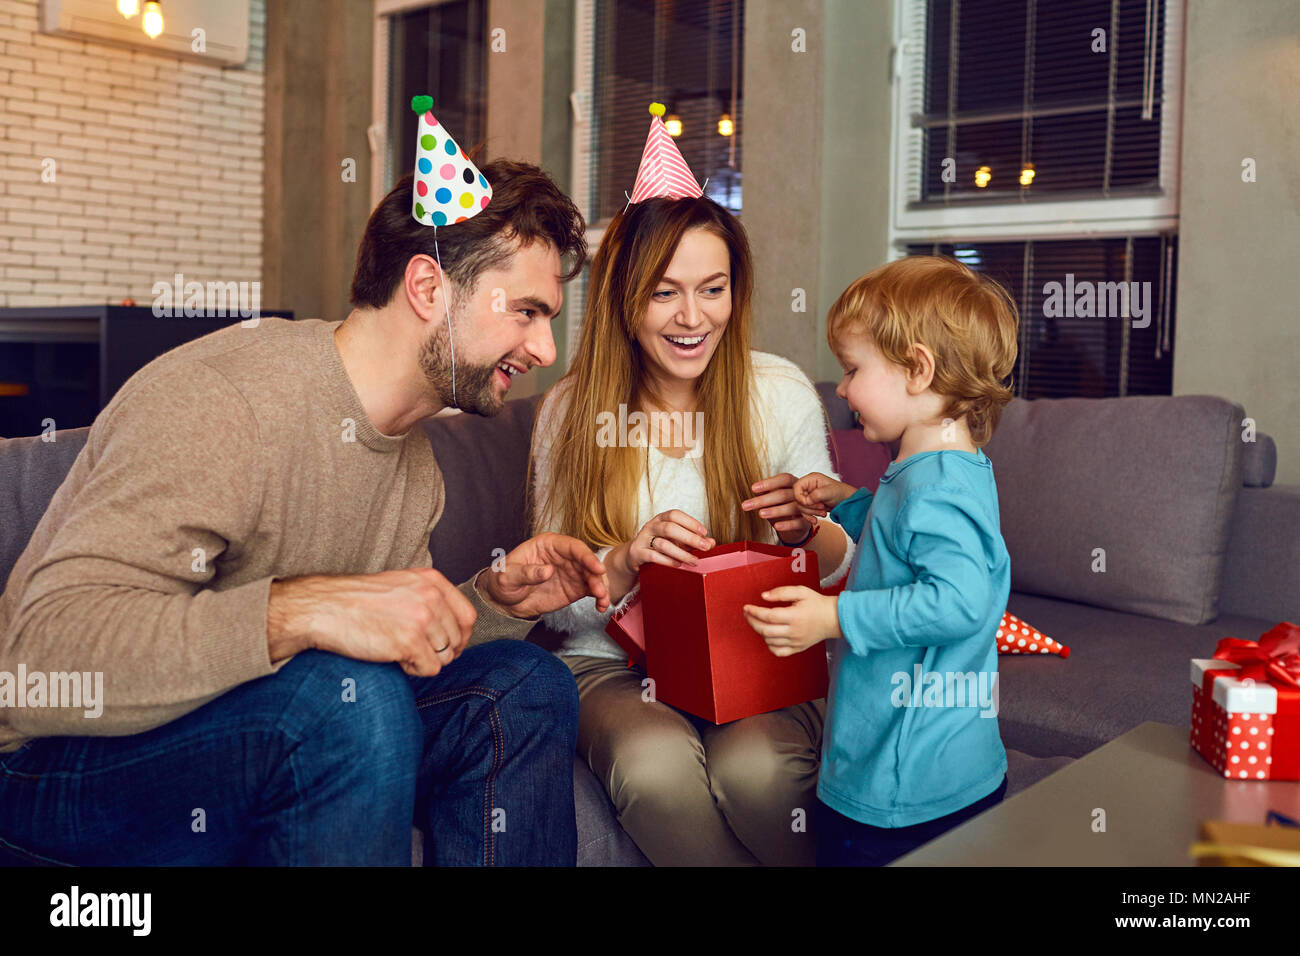 Parents give a gift to their child on the day of birth. - Stock Image